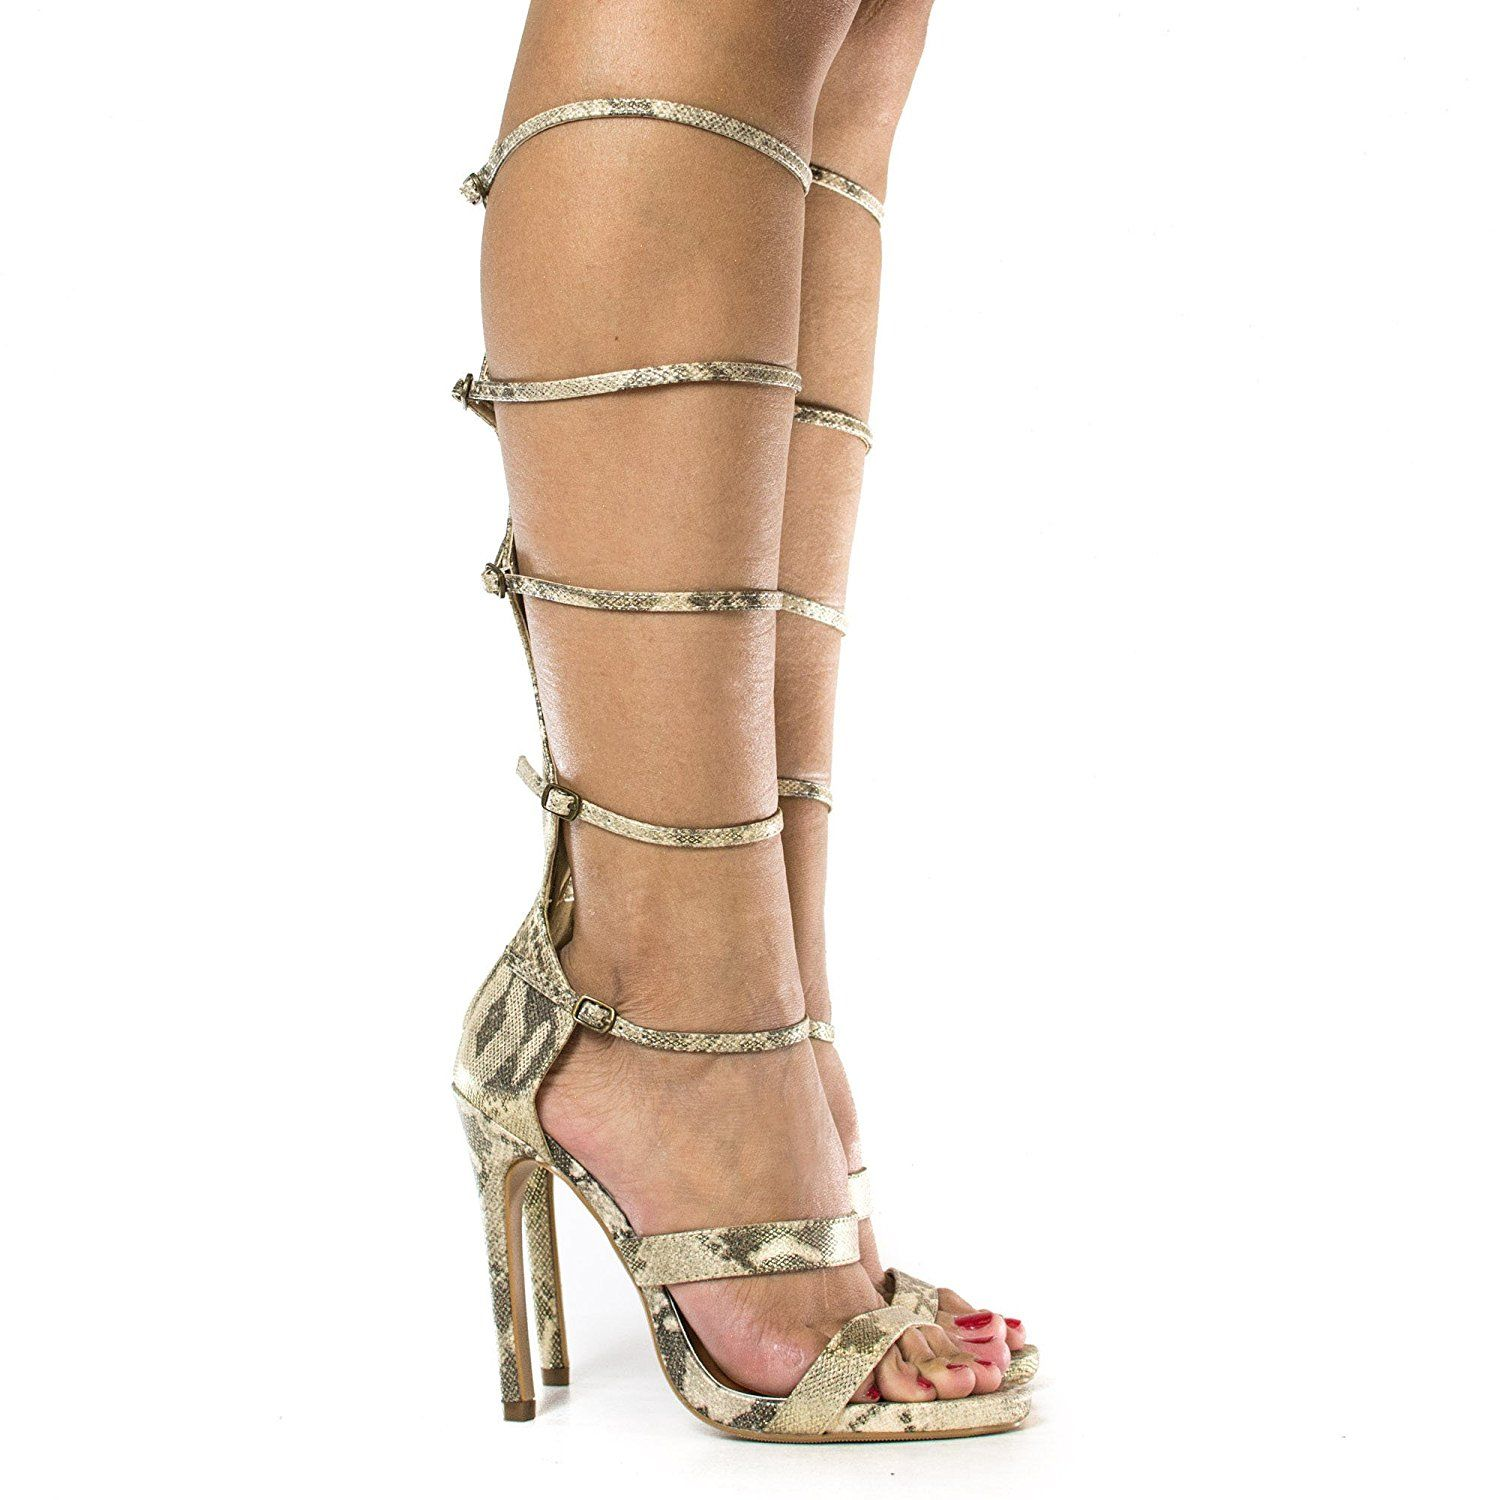 fb331130fc38 Knee High Open Toe Gladiator Multi Buckle Strappy Stiletto Heels     Remarkable product available now.   Gladiator sandals